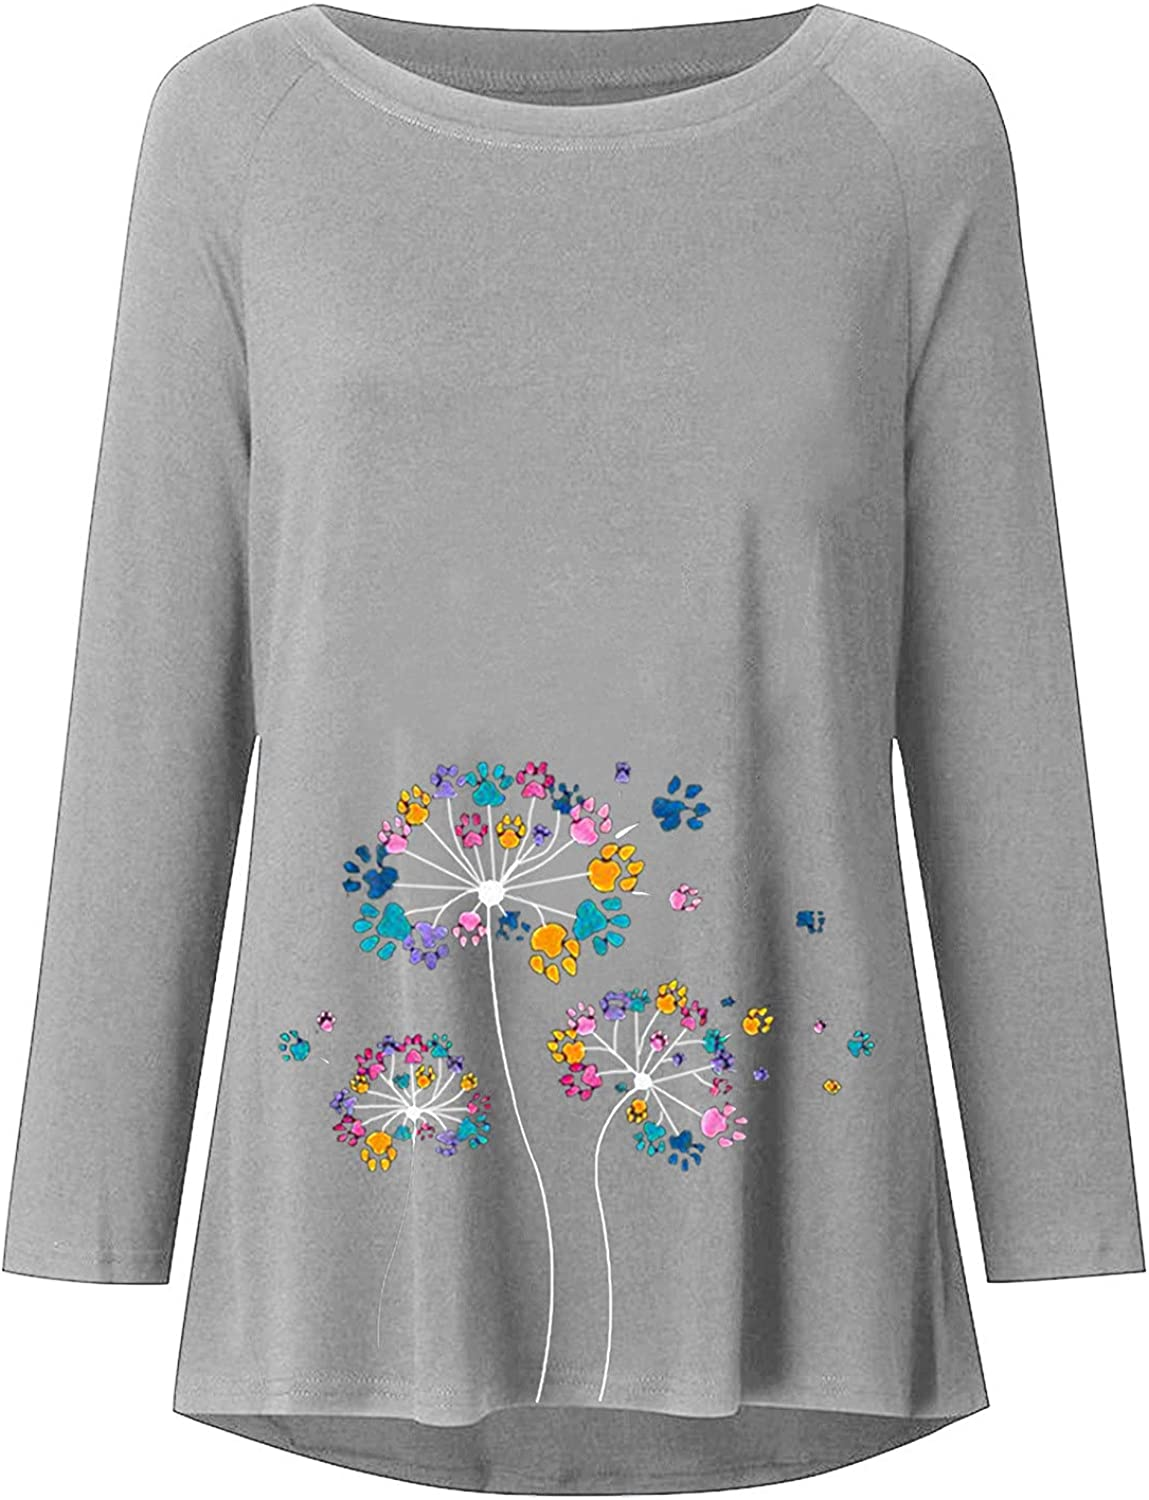 aihihe Womens Casual Crewneck Sweatshirts Pullover Oversized Long Sleeve Sweaters with Pockets Shirts Tunic Tops